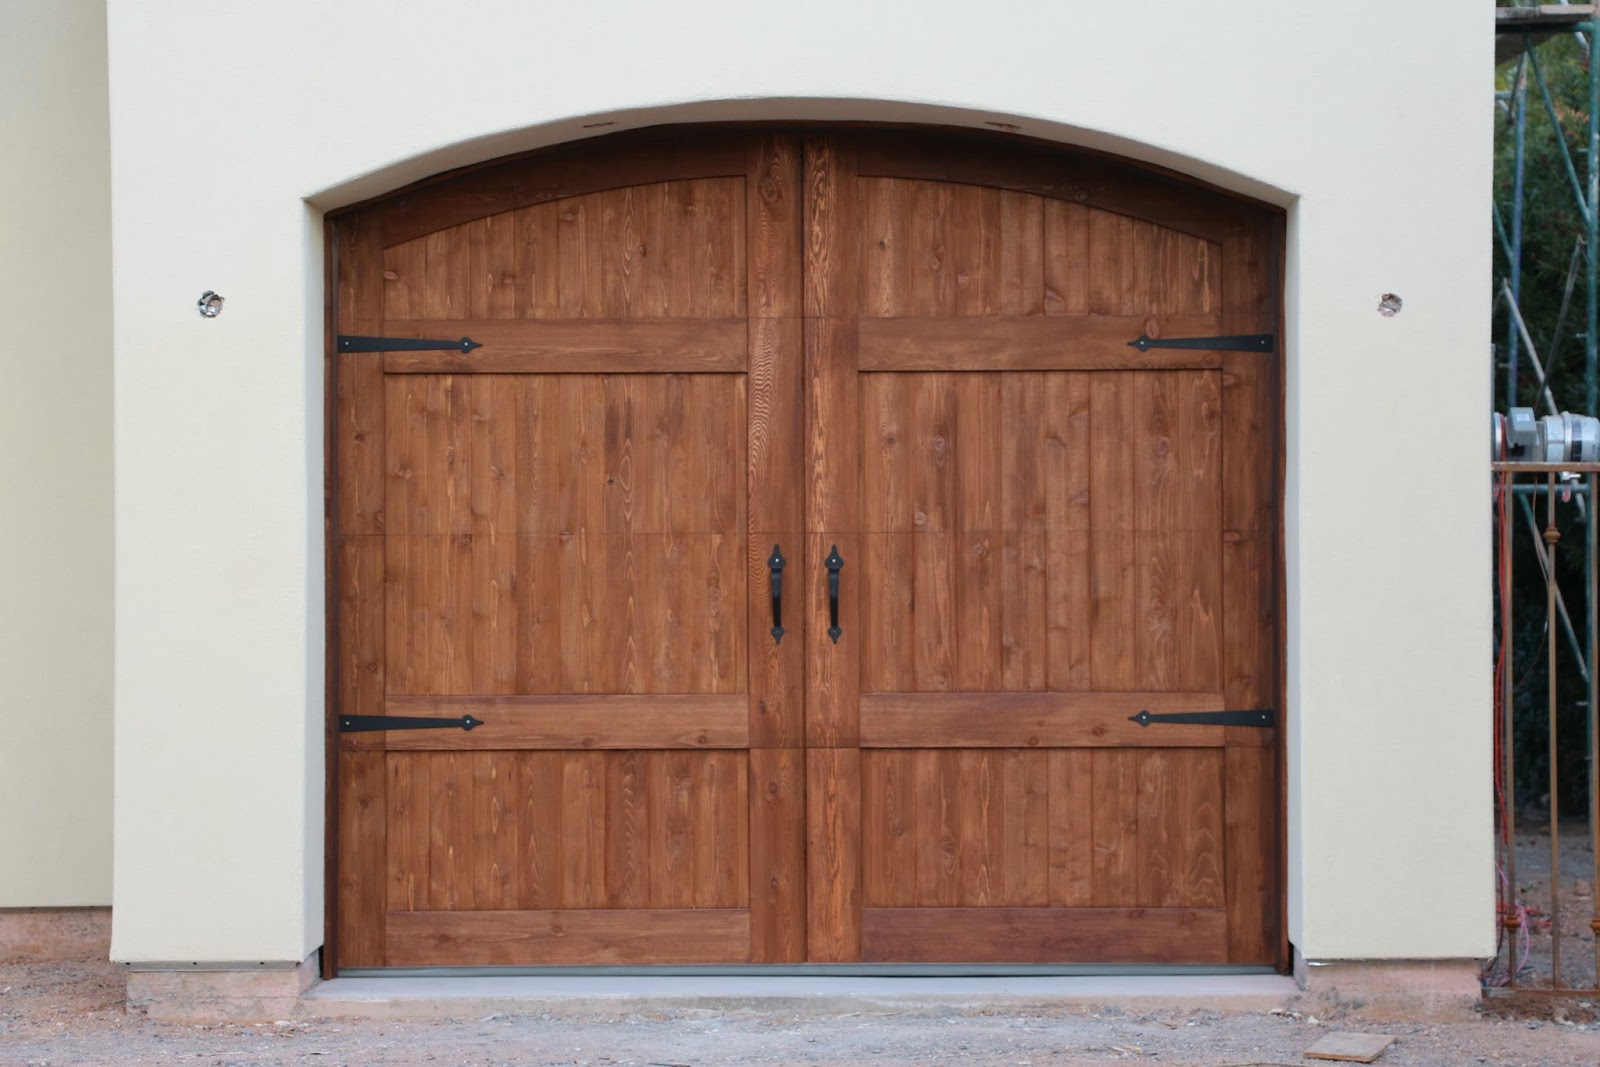 cedar garage doors, decorative hardware for garage doors, On Track garage doors